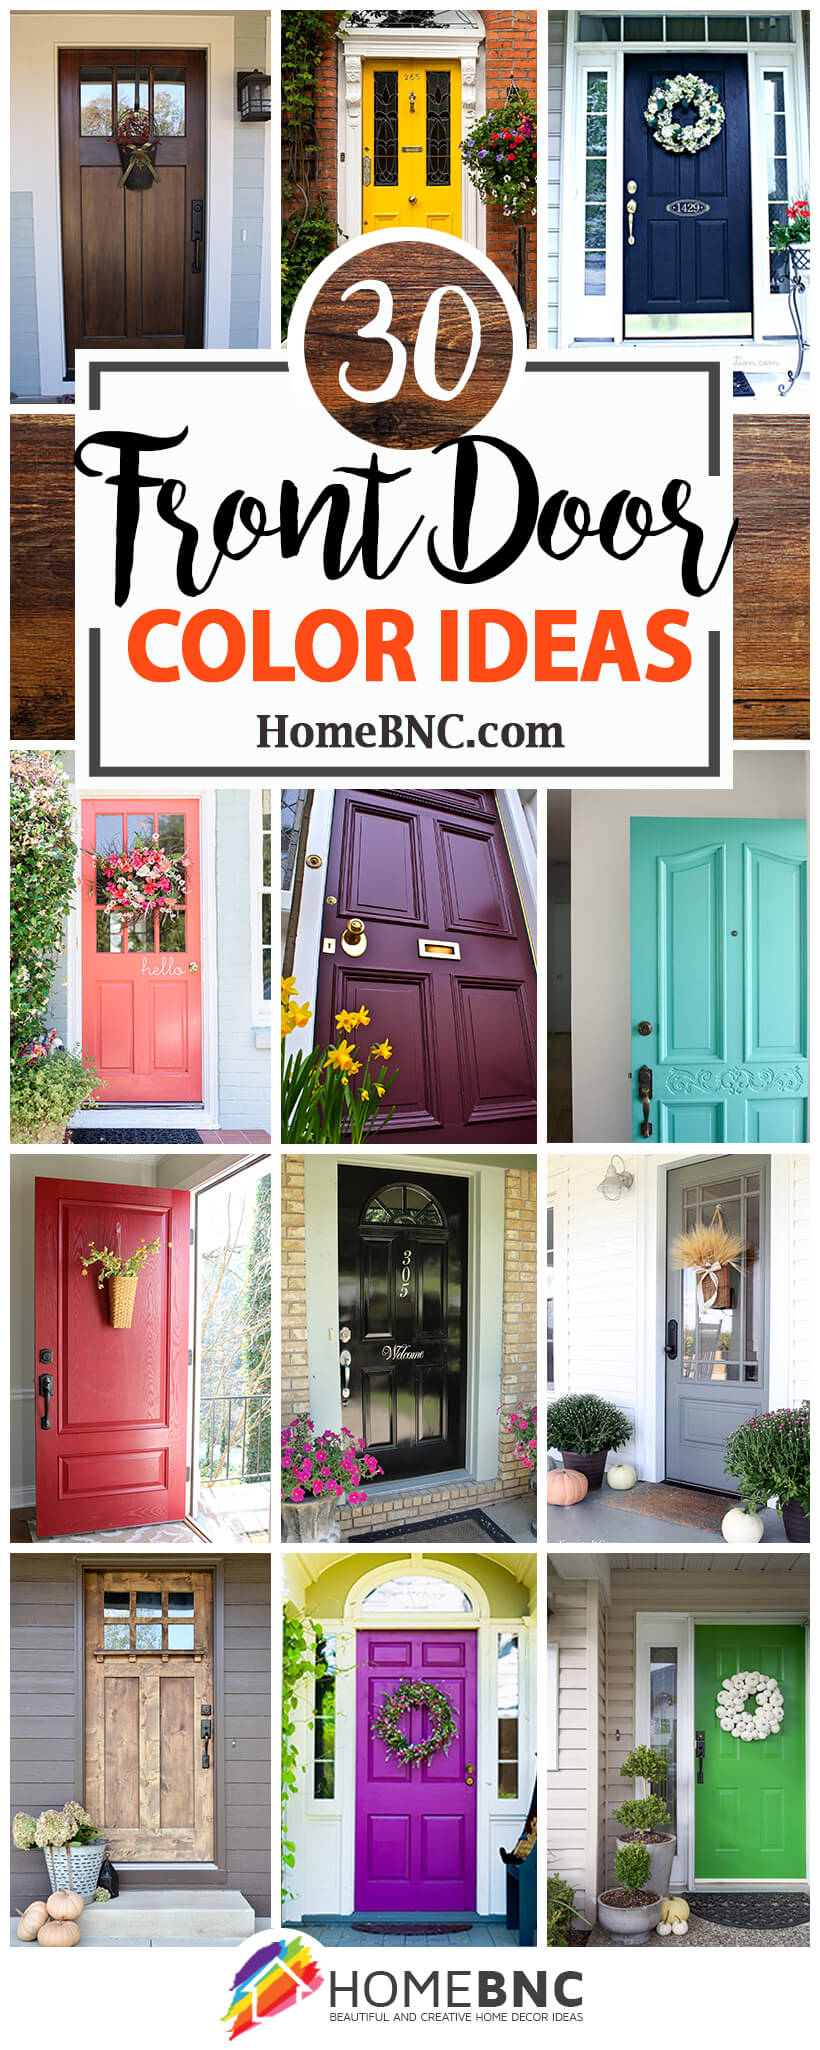 Fabulous 30 Best Front Door Color Ideas And Designs For 2019 Home Interior And Landscaping Ologienasavecom